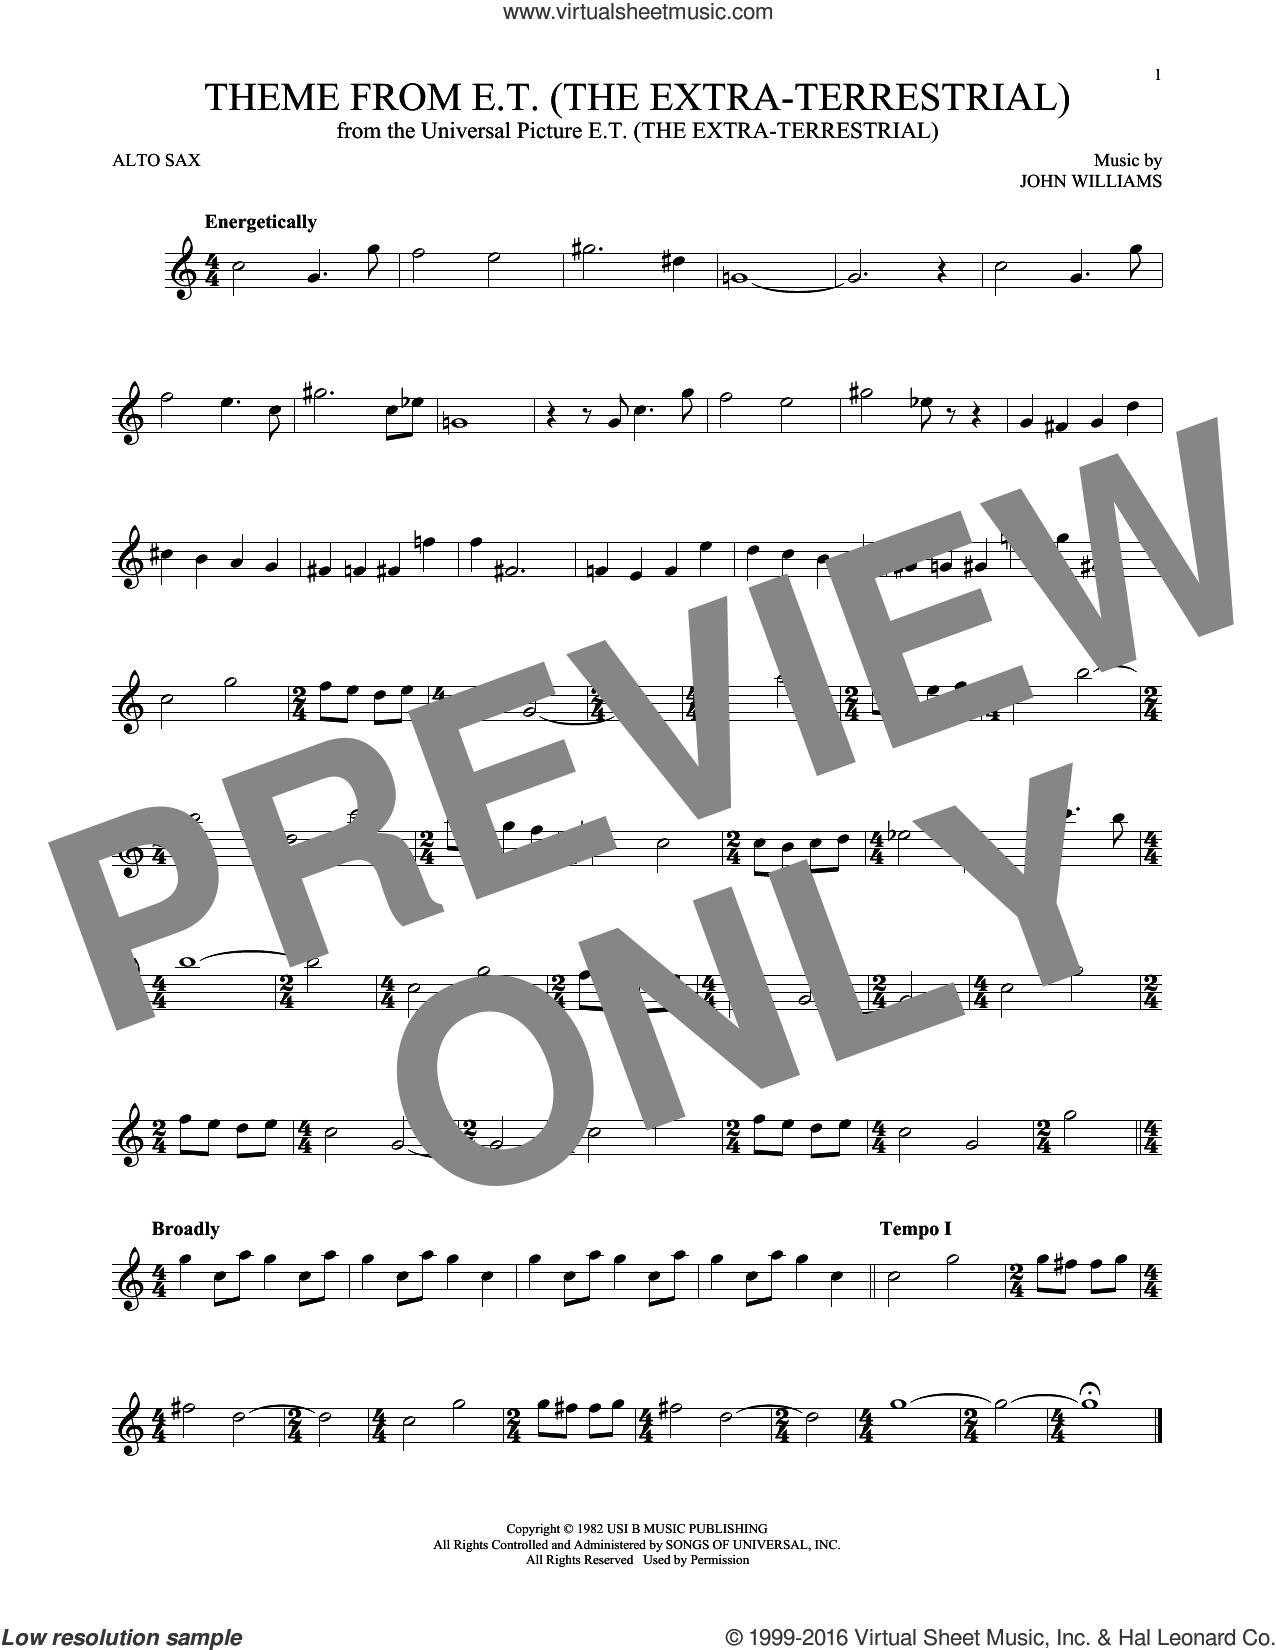 Theme From E.T. (The Extra-Terrestrial) sheet music for alto saxophone solo by John Williams. Score Image Preview.